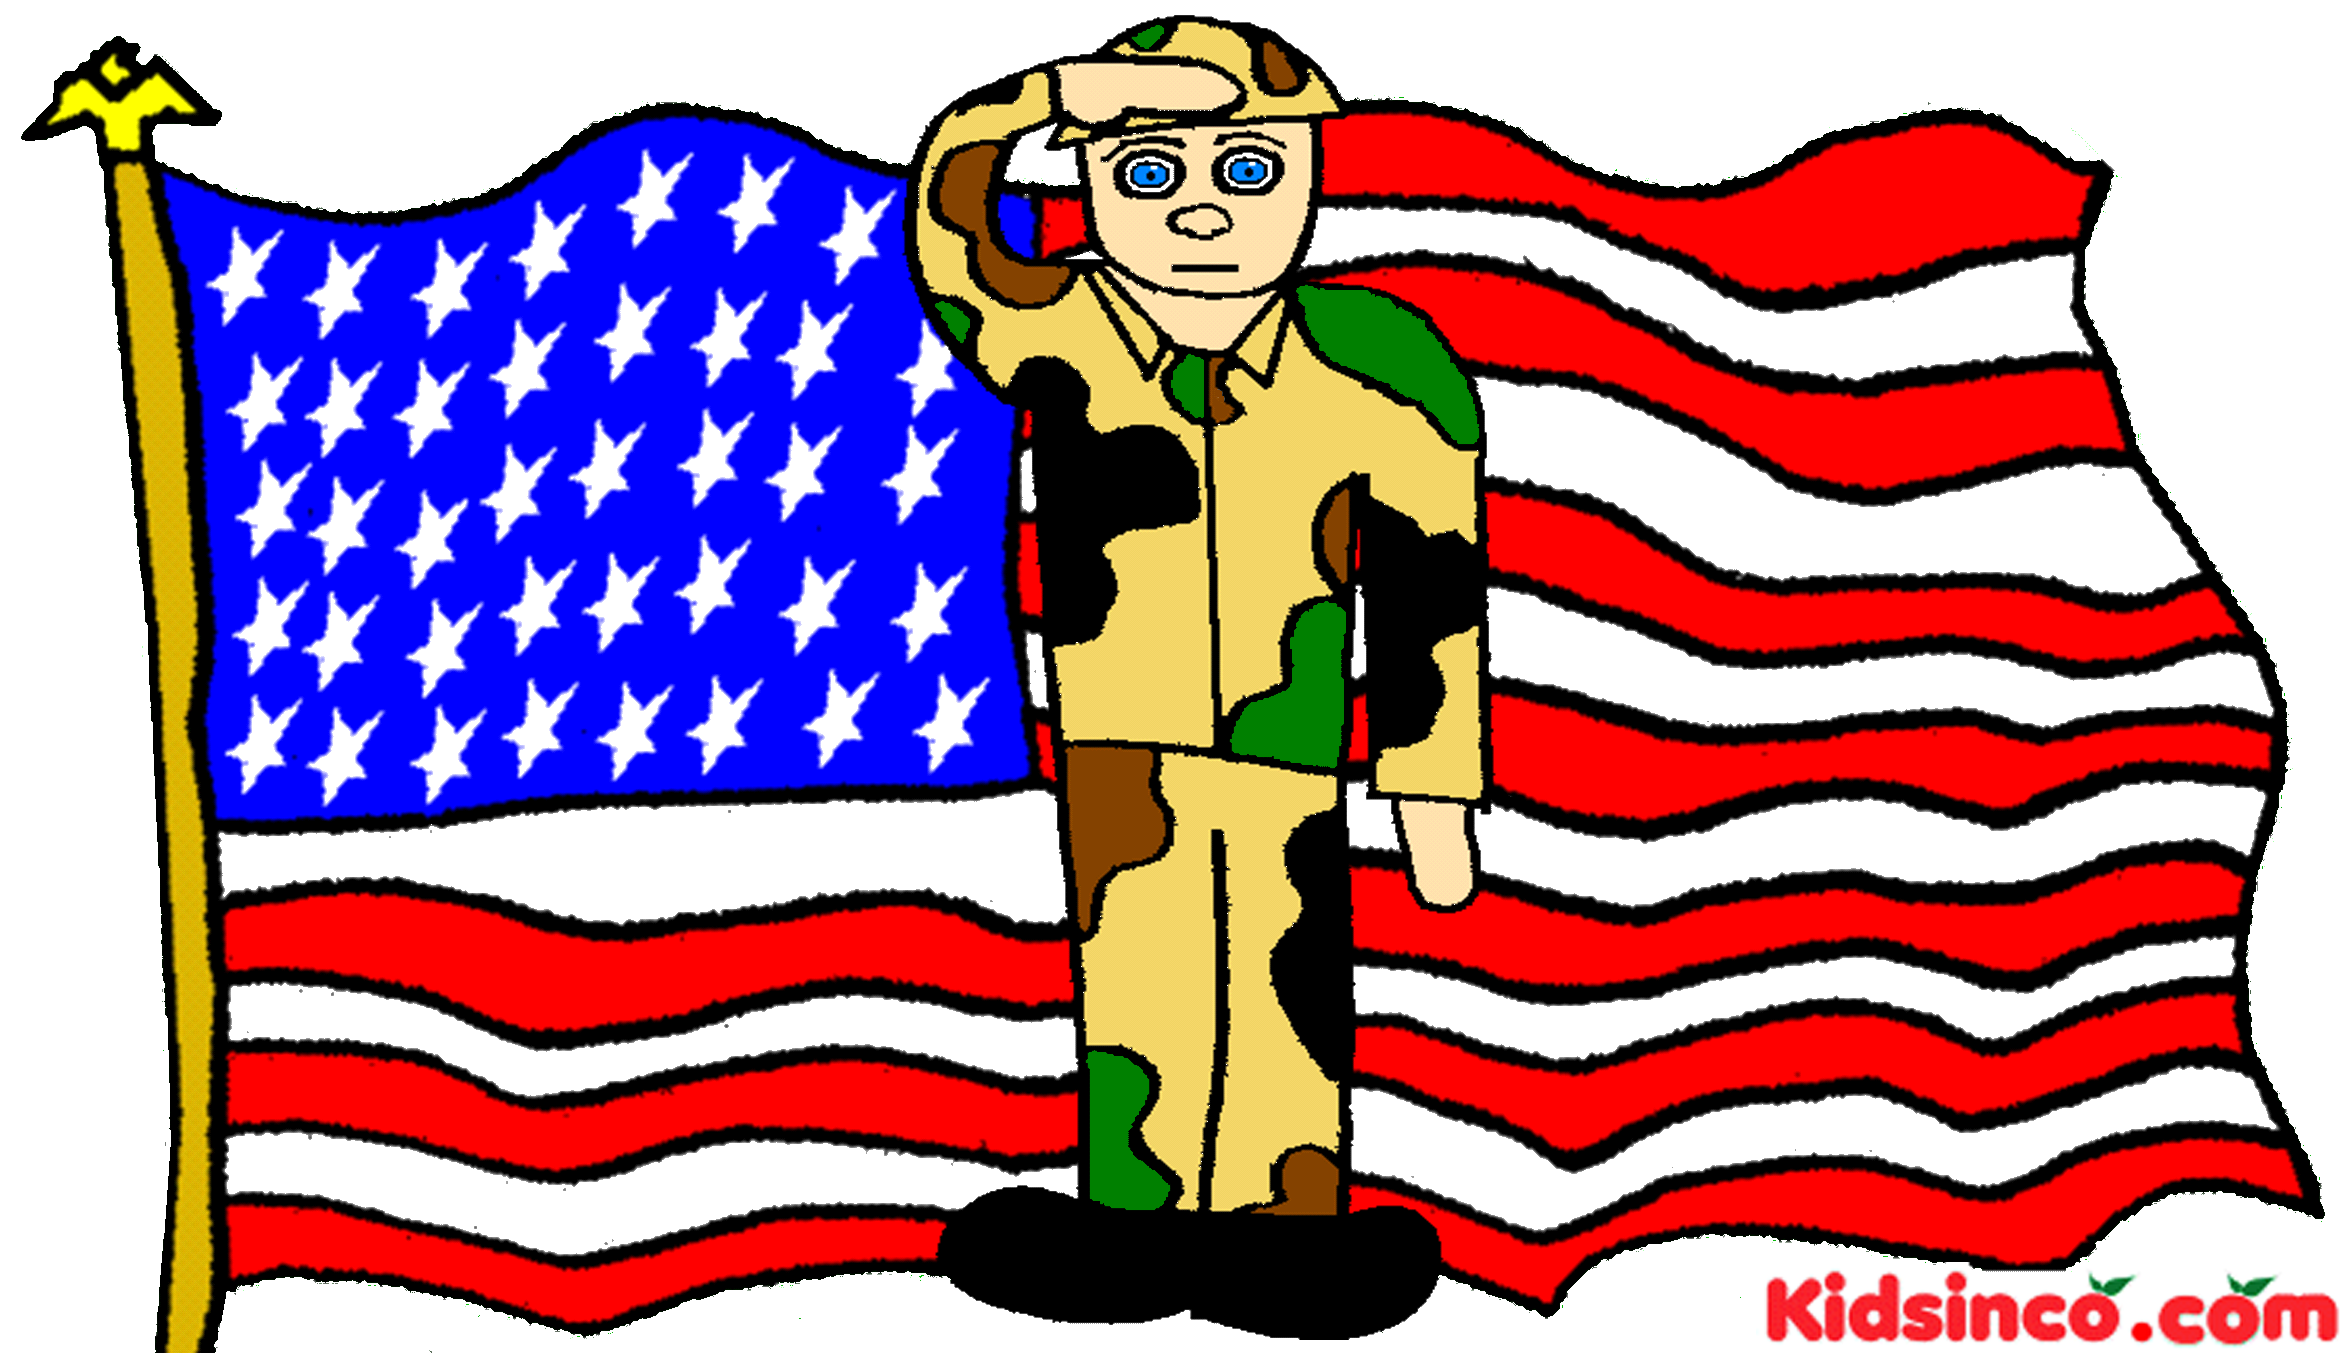 Generic soldier outline pattern for children s veterans day craft clipart clip art library Free Memorial Day Clipart, Download Free Clip Art, Free Clip Art on ... clip art library